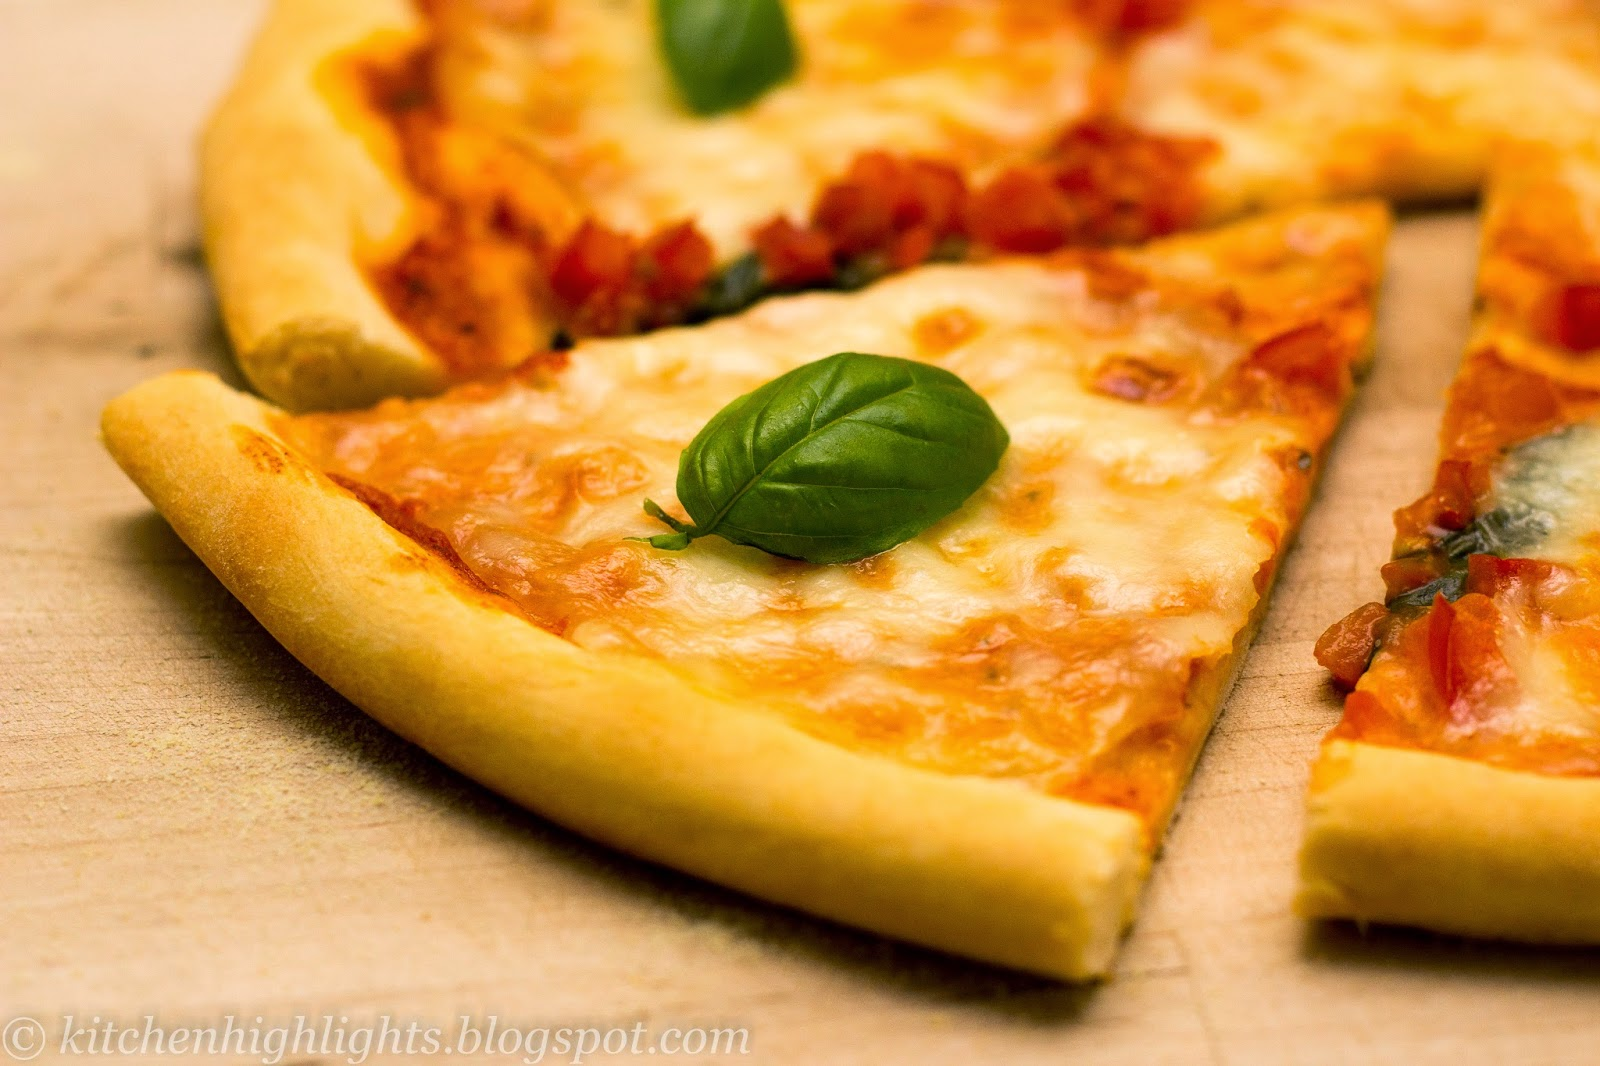 Invented in Naples, Italy, pizza has since become very popular in many parts of the world